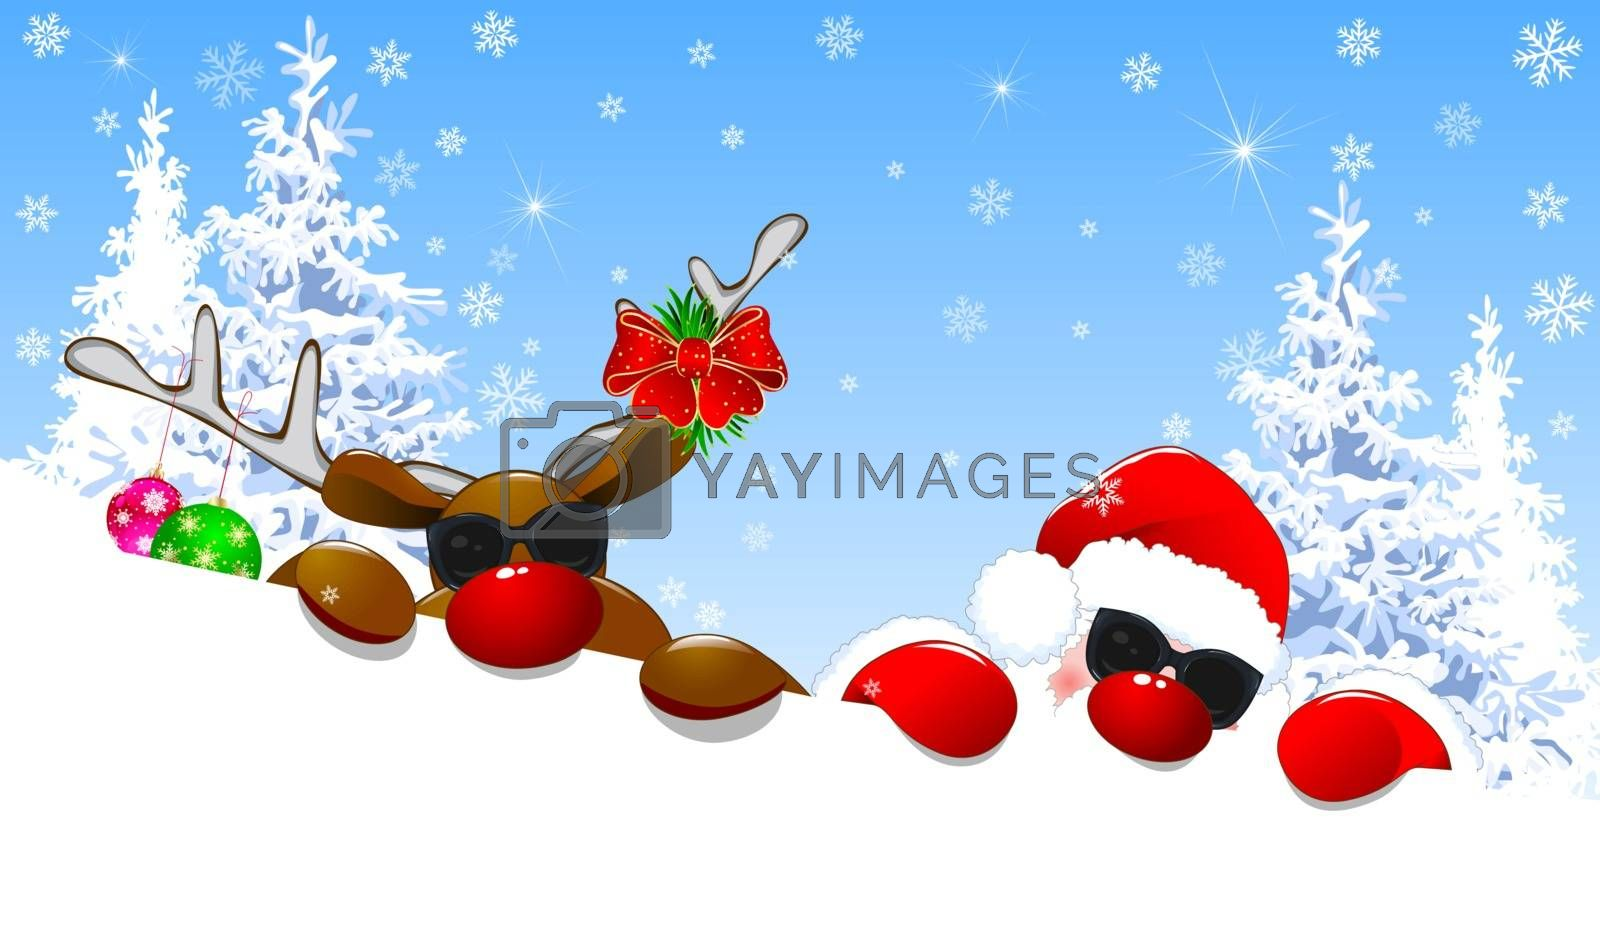 Santa and a deer are lying in the snow against the backdrop of a winter forest. Santa and a deer with a red nose.